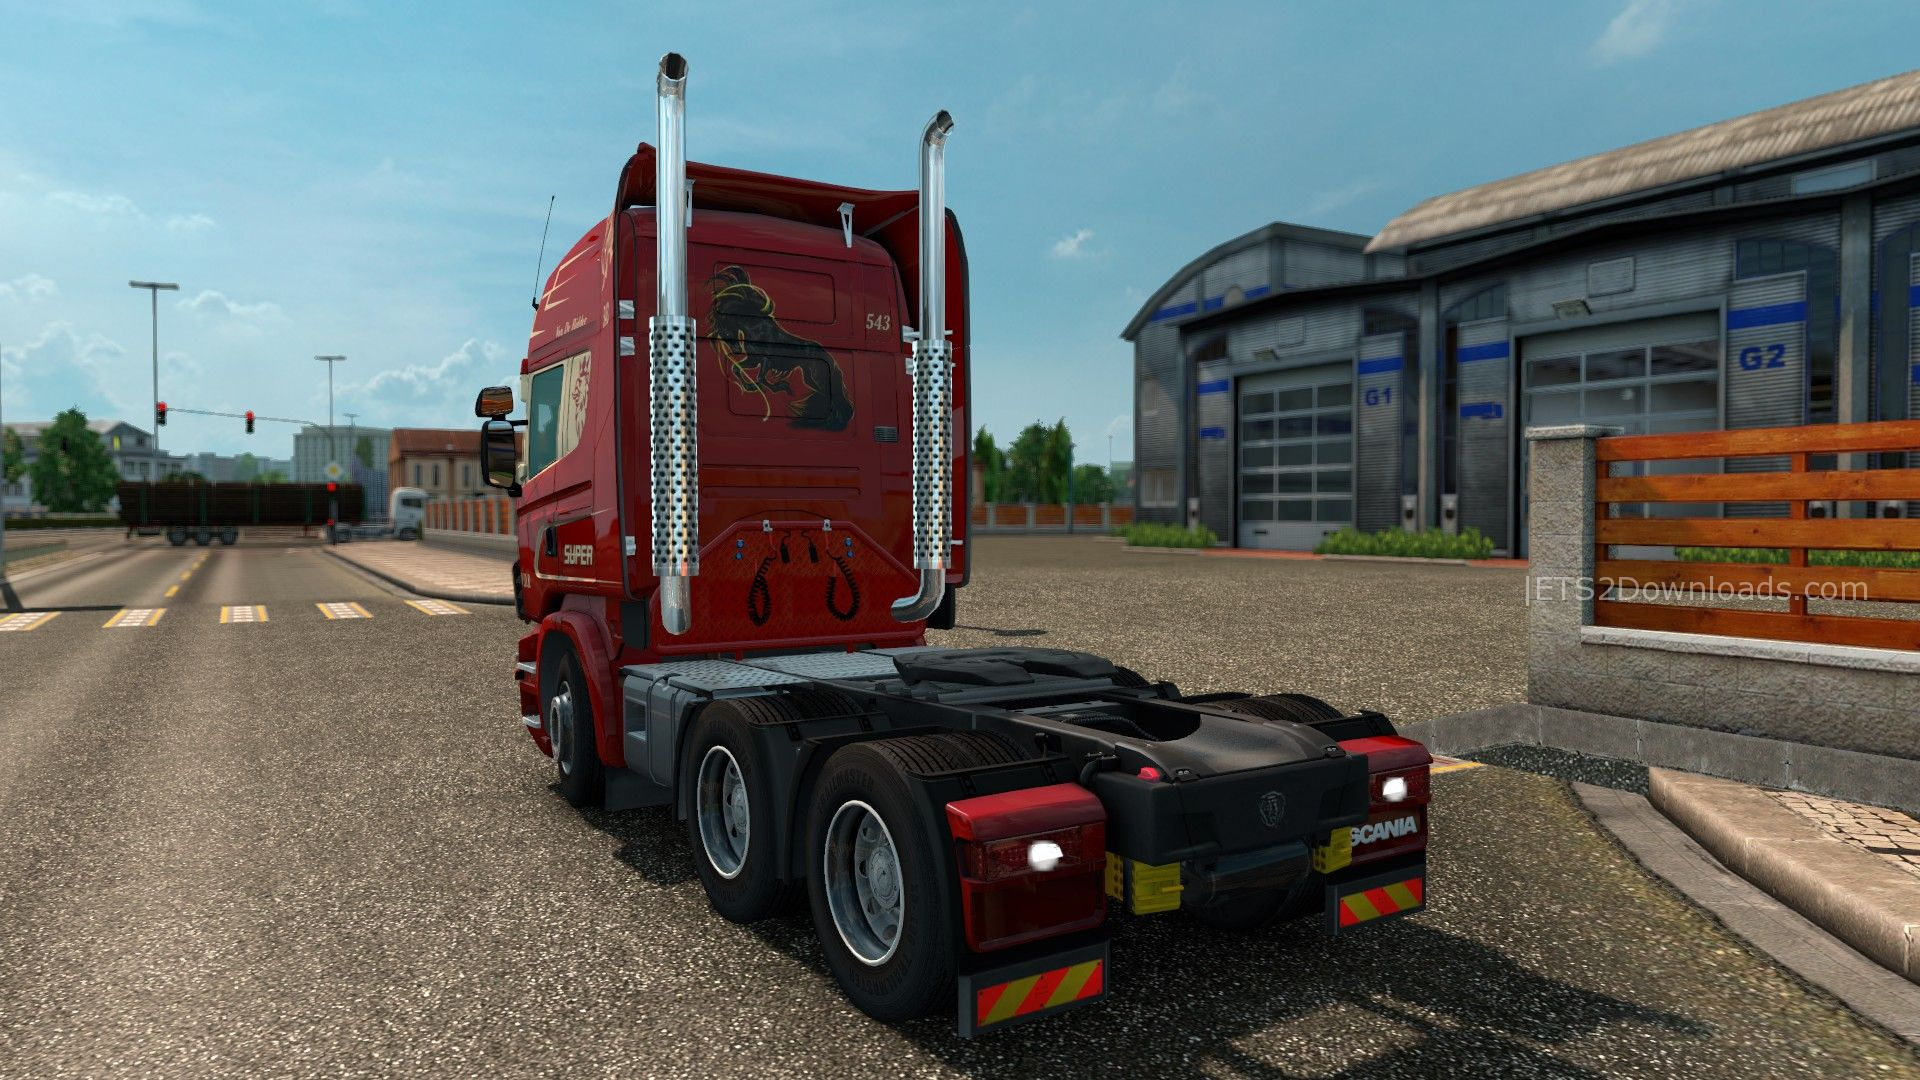 van-de-ridder-skin-for-scania-rjl-2